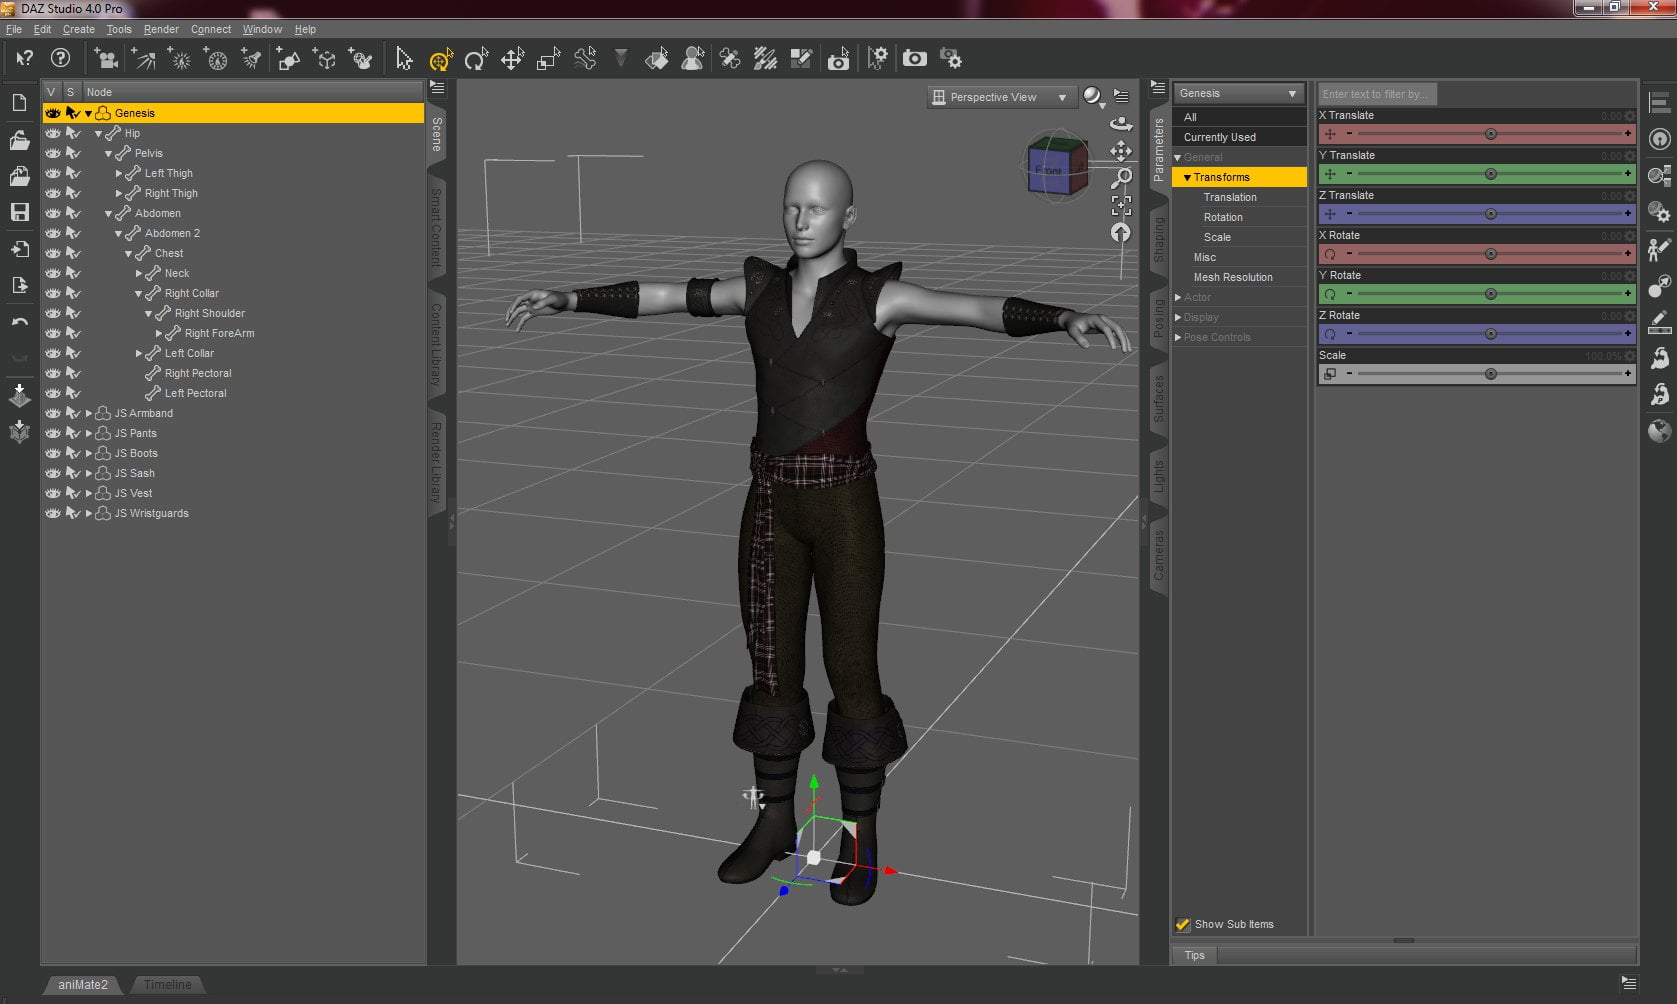 graphical user interface of daz studio 4 pro briefly explained